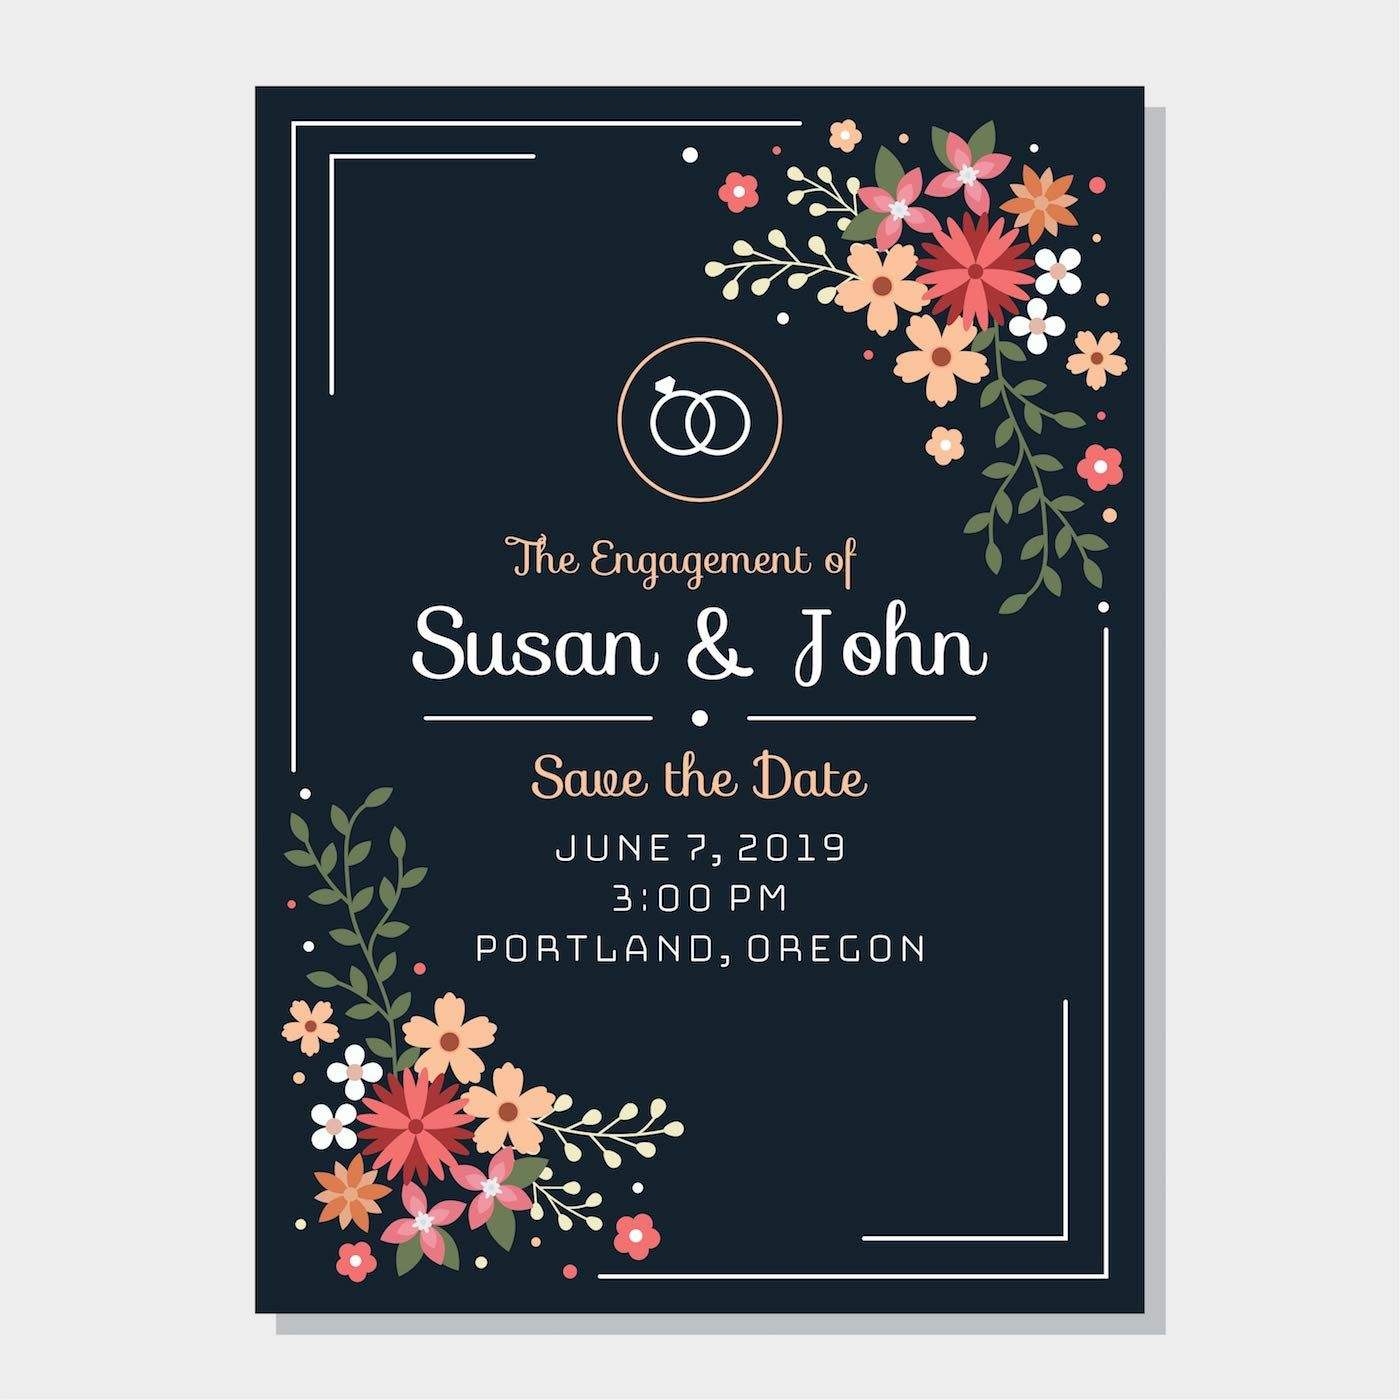 Engagement Invitation Template Vector  Engagement invitation